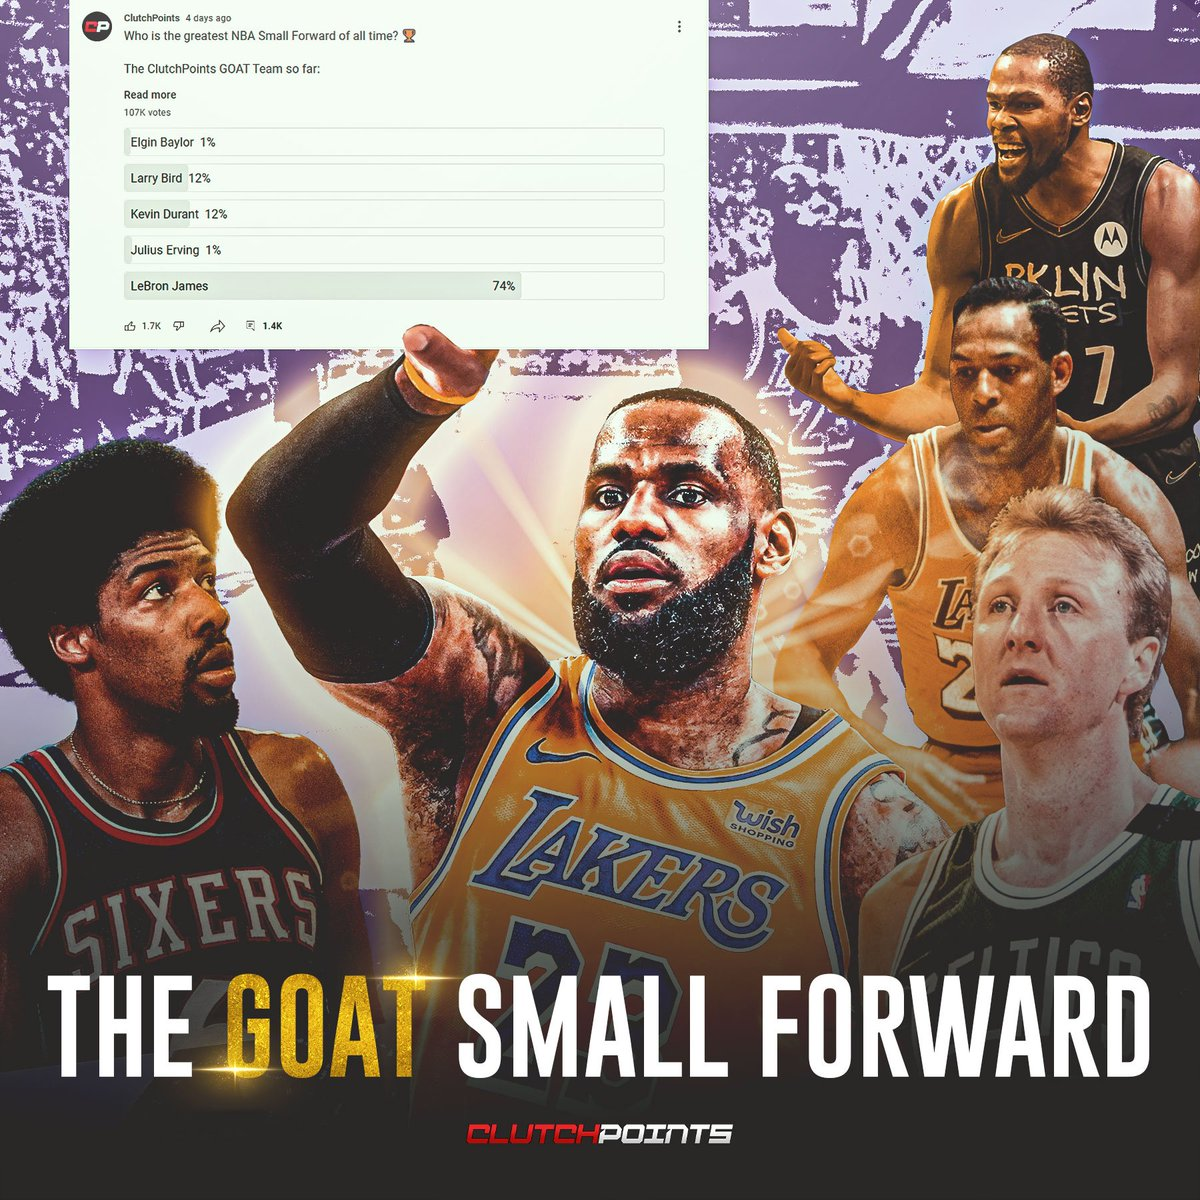 74% of the 107,000 fans who voted in our YouTube Community poll picked LeBron James as the greatest small forward of all time 👑  The ClutchPoints GOAT team so far: Michael Jordan, LeBron James, Tim Duncan, Kareem Abdul-Jabbar  The final poll is ACTIVE 🔥: bit.ly/ClutchYouTubeF…